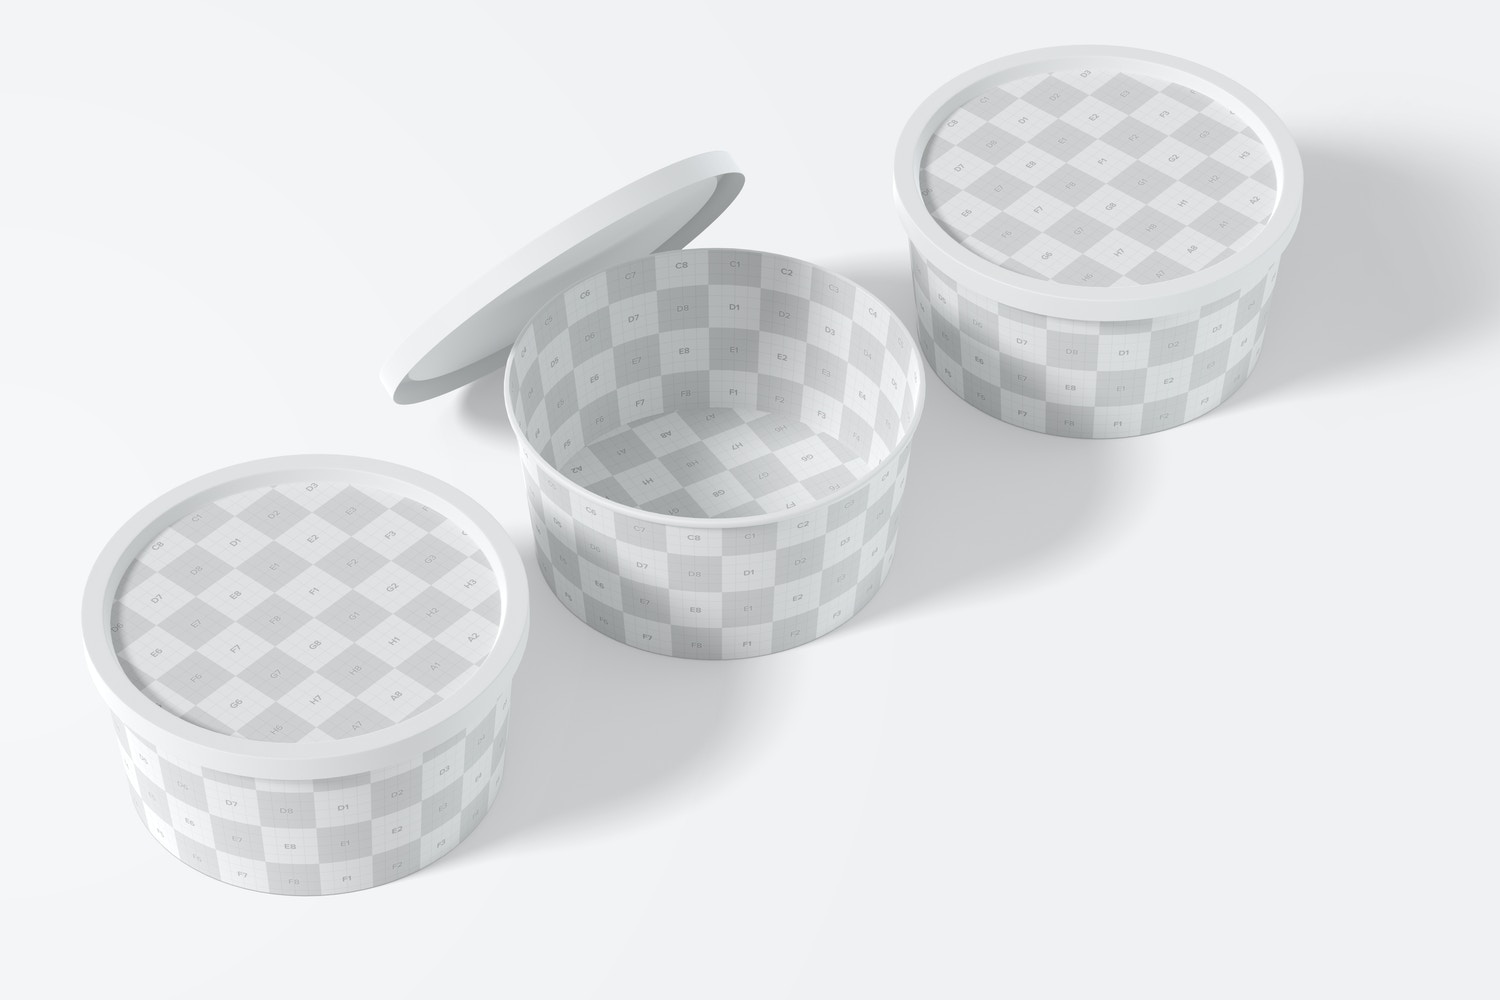 You can place your design in the lids.